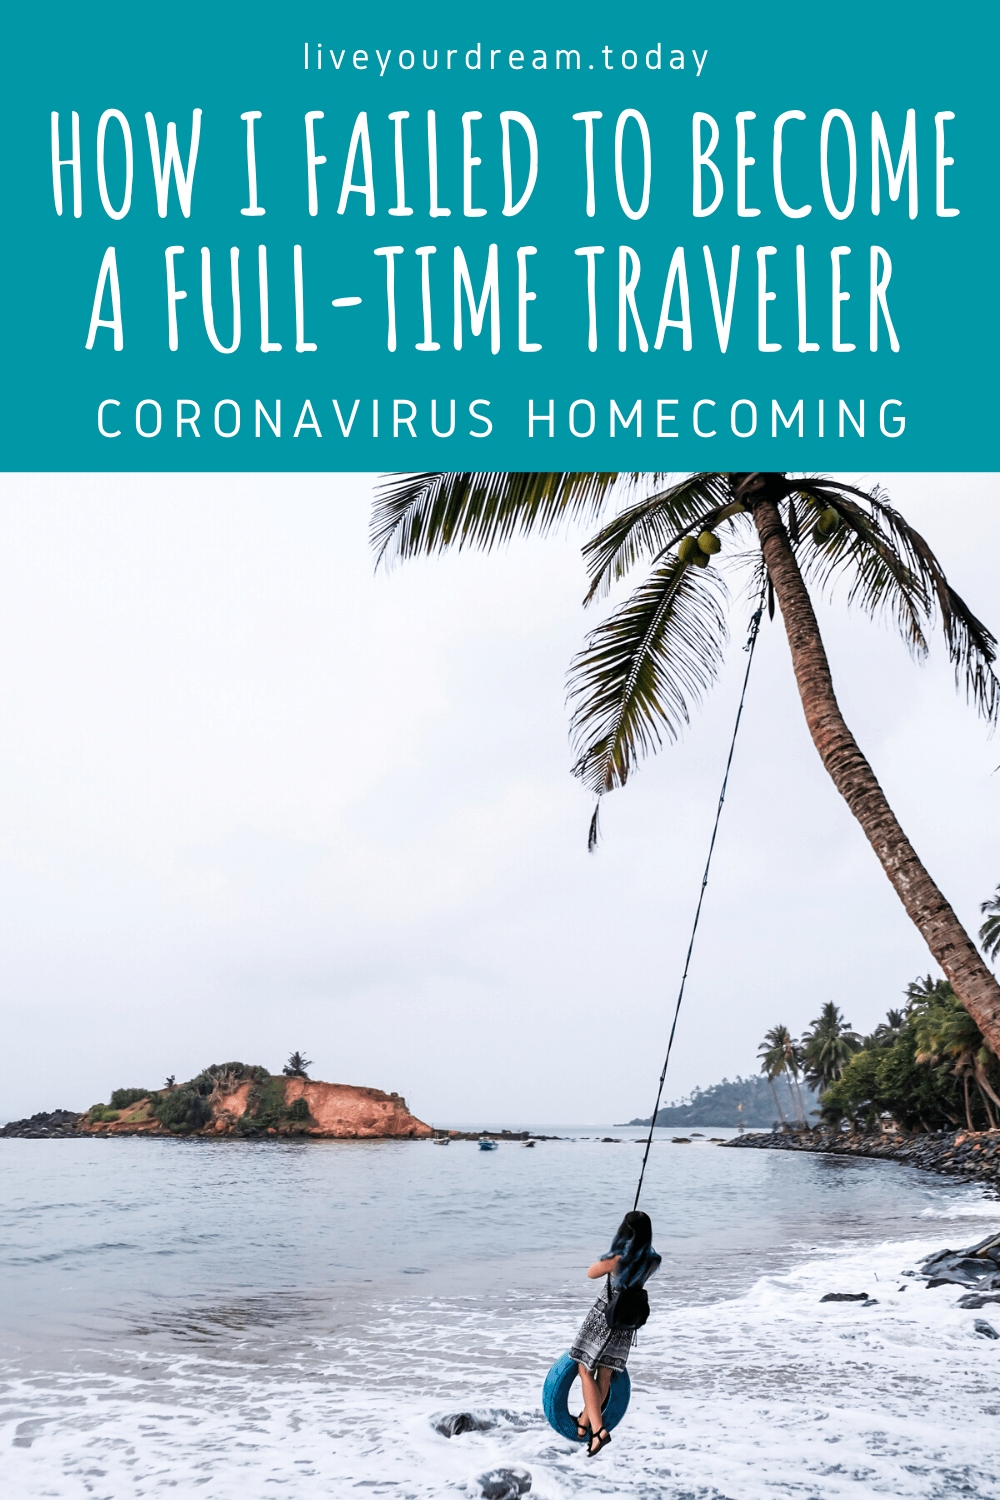 coronavirus homecoming trip